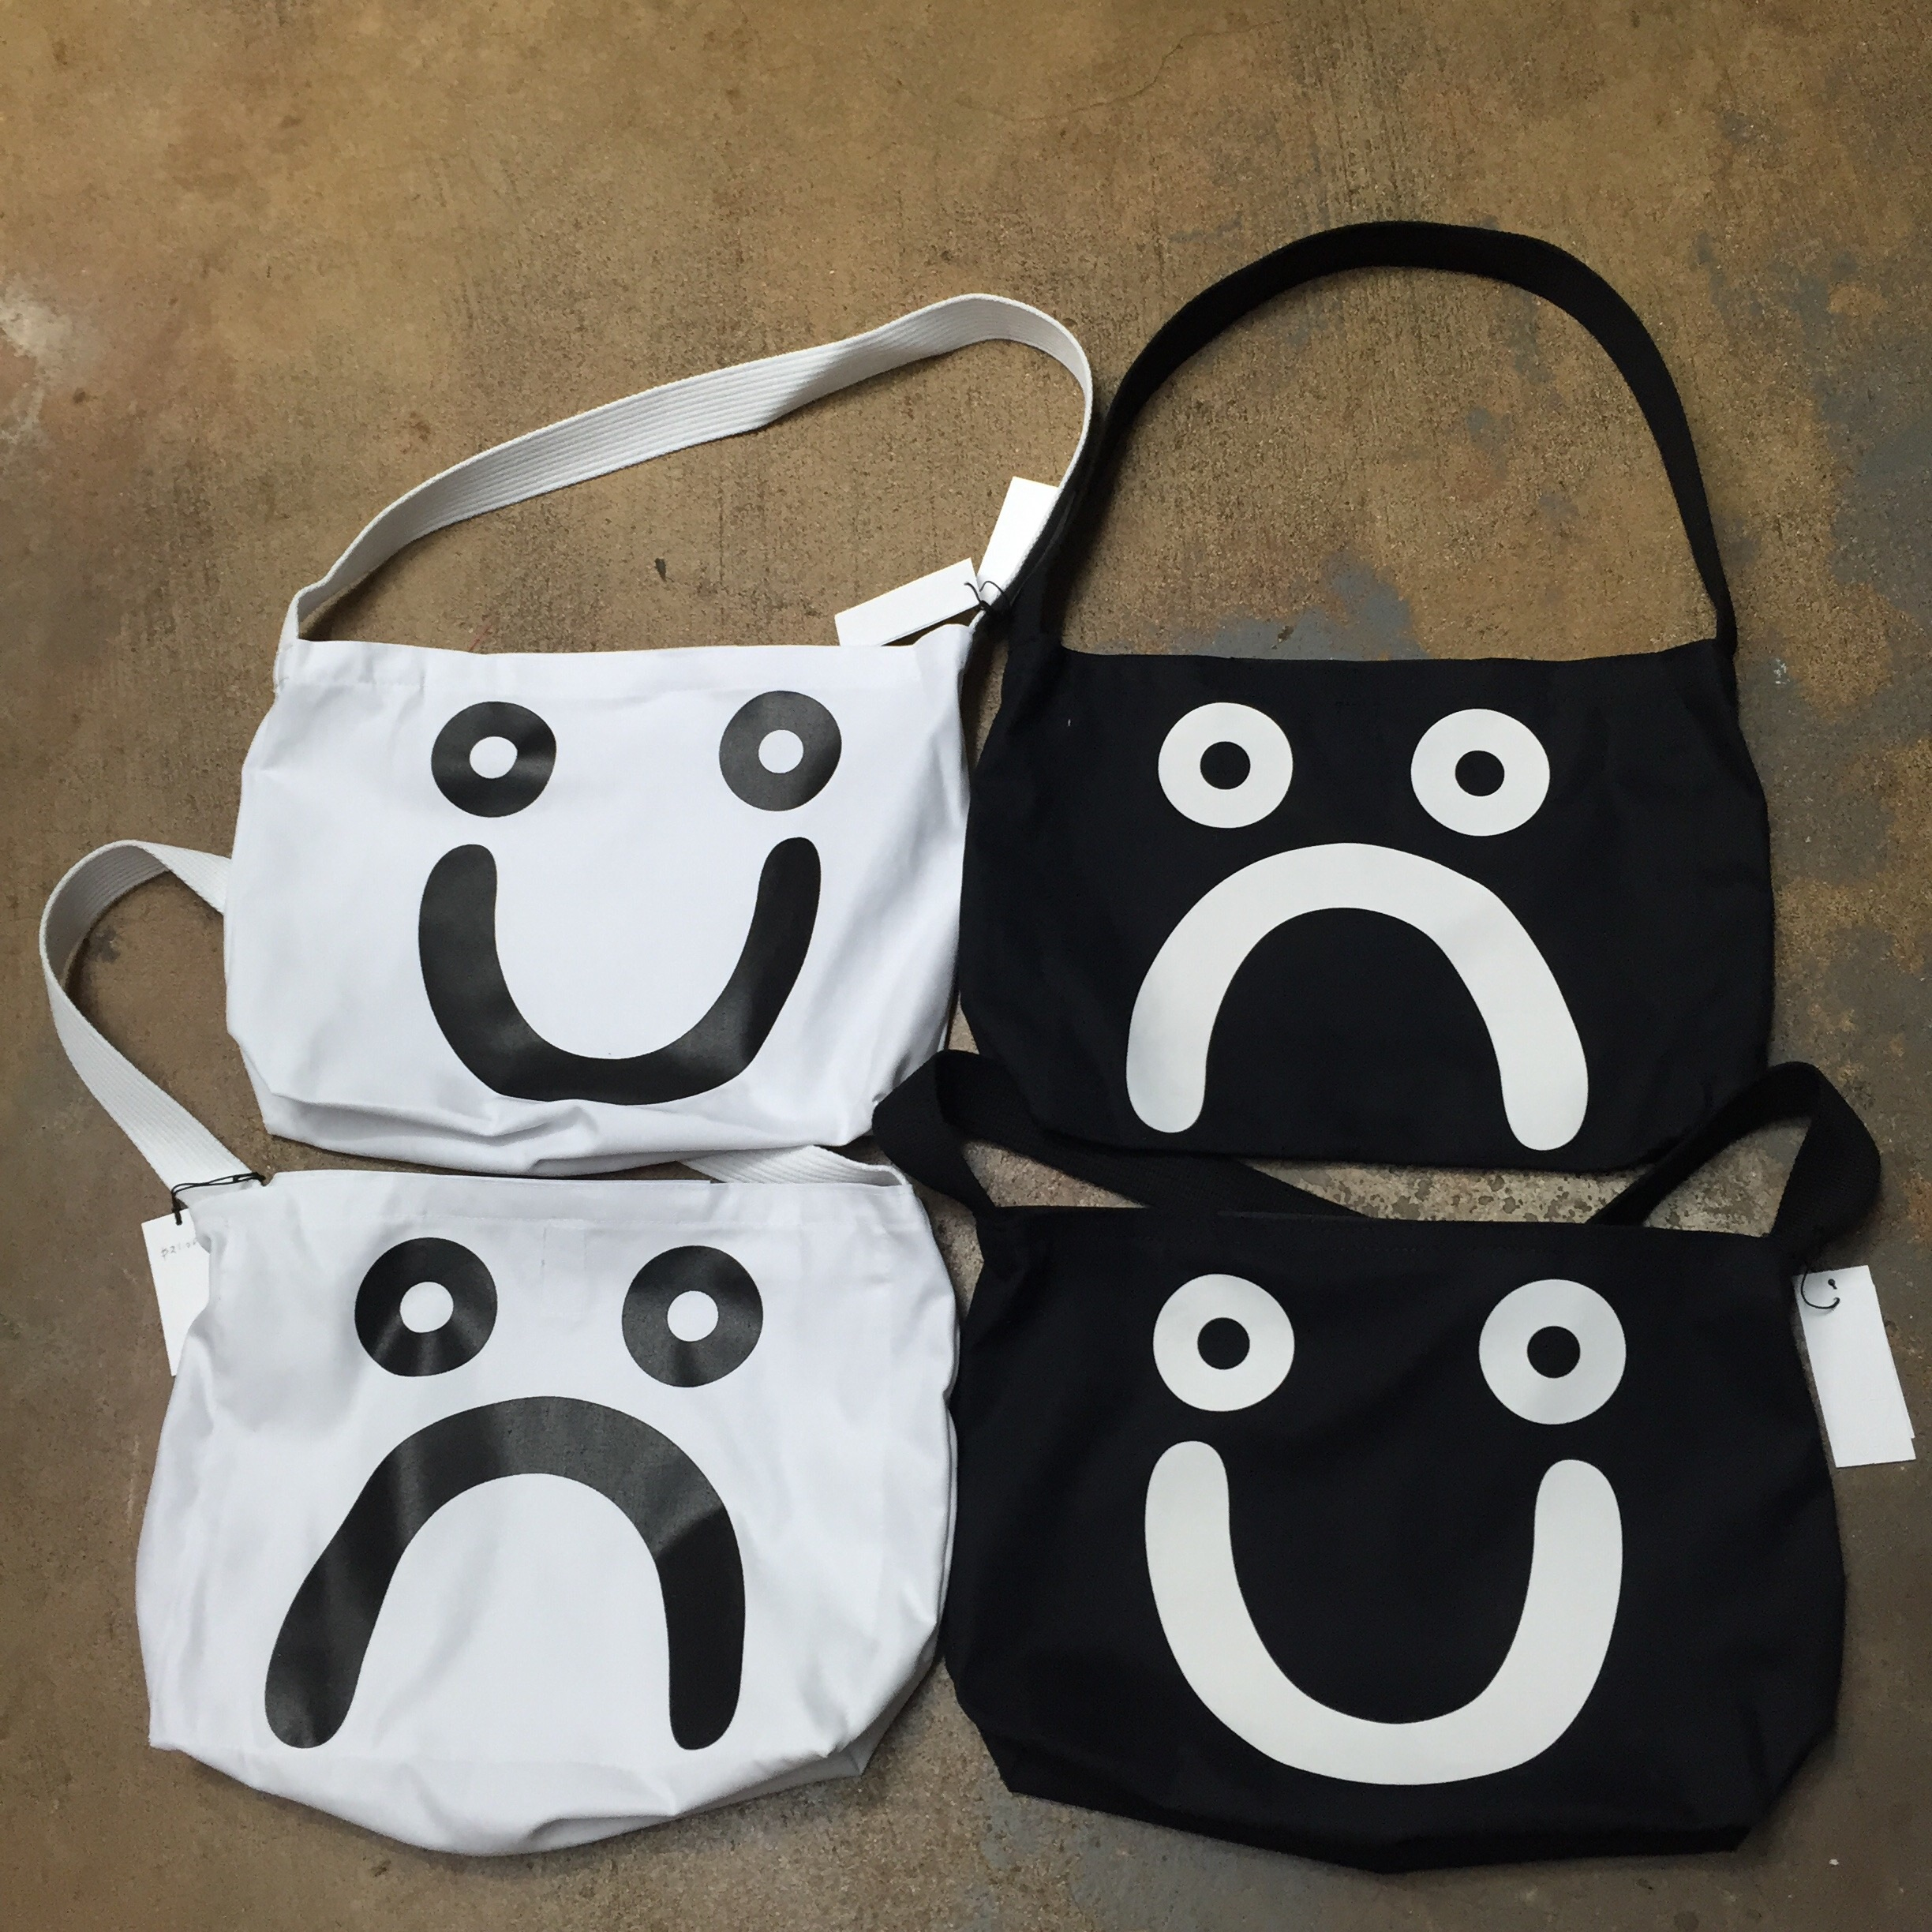 Polar happy/sad tote bags!